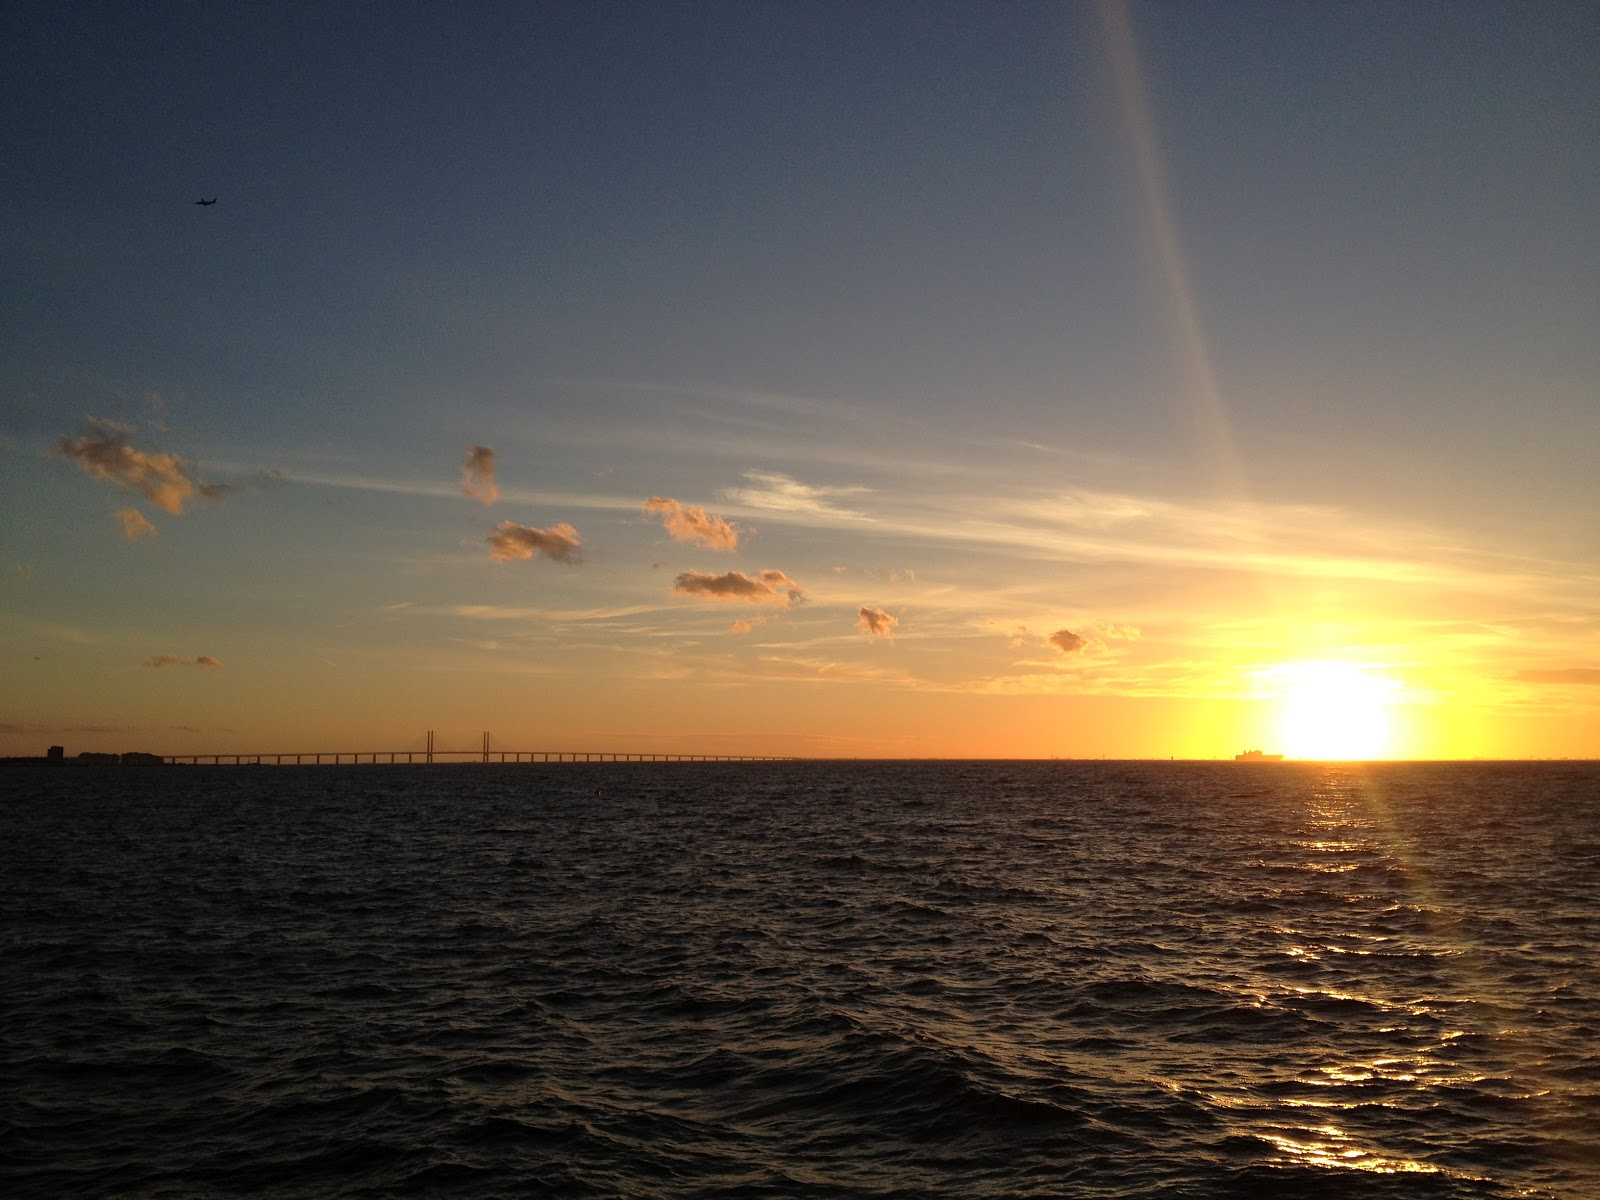 sunset in the Oresund Strait as seen from the western shore of Vastra Hamnen